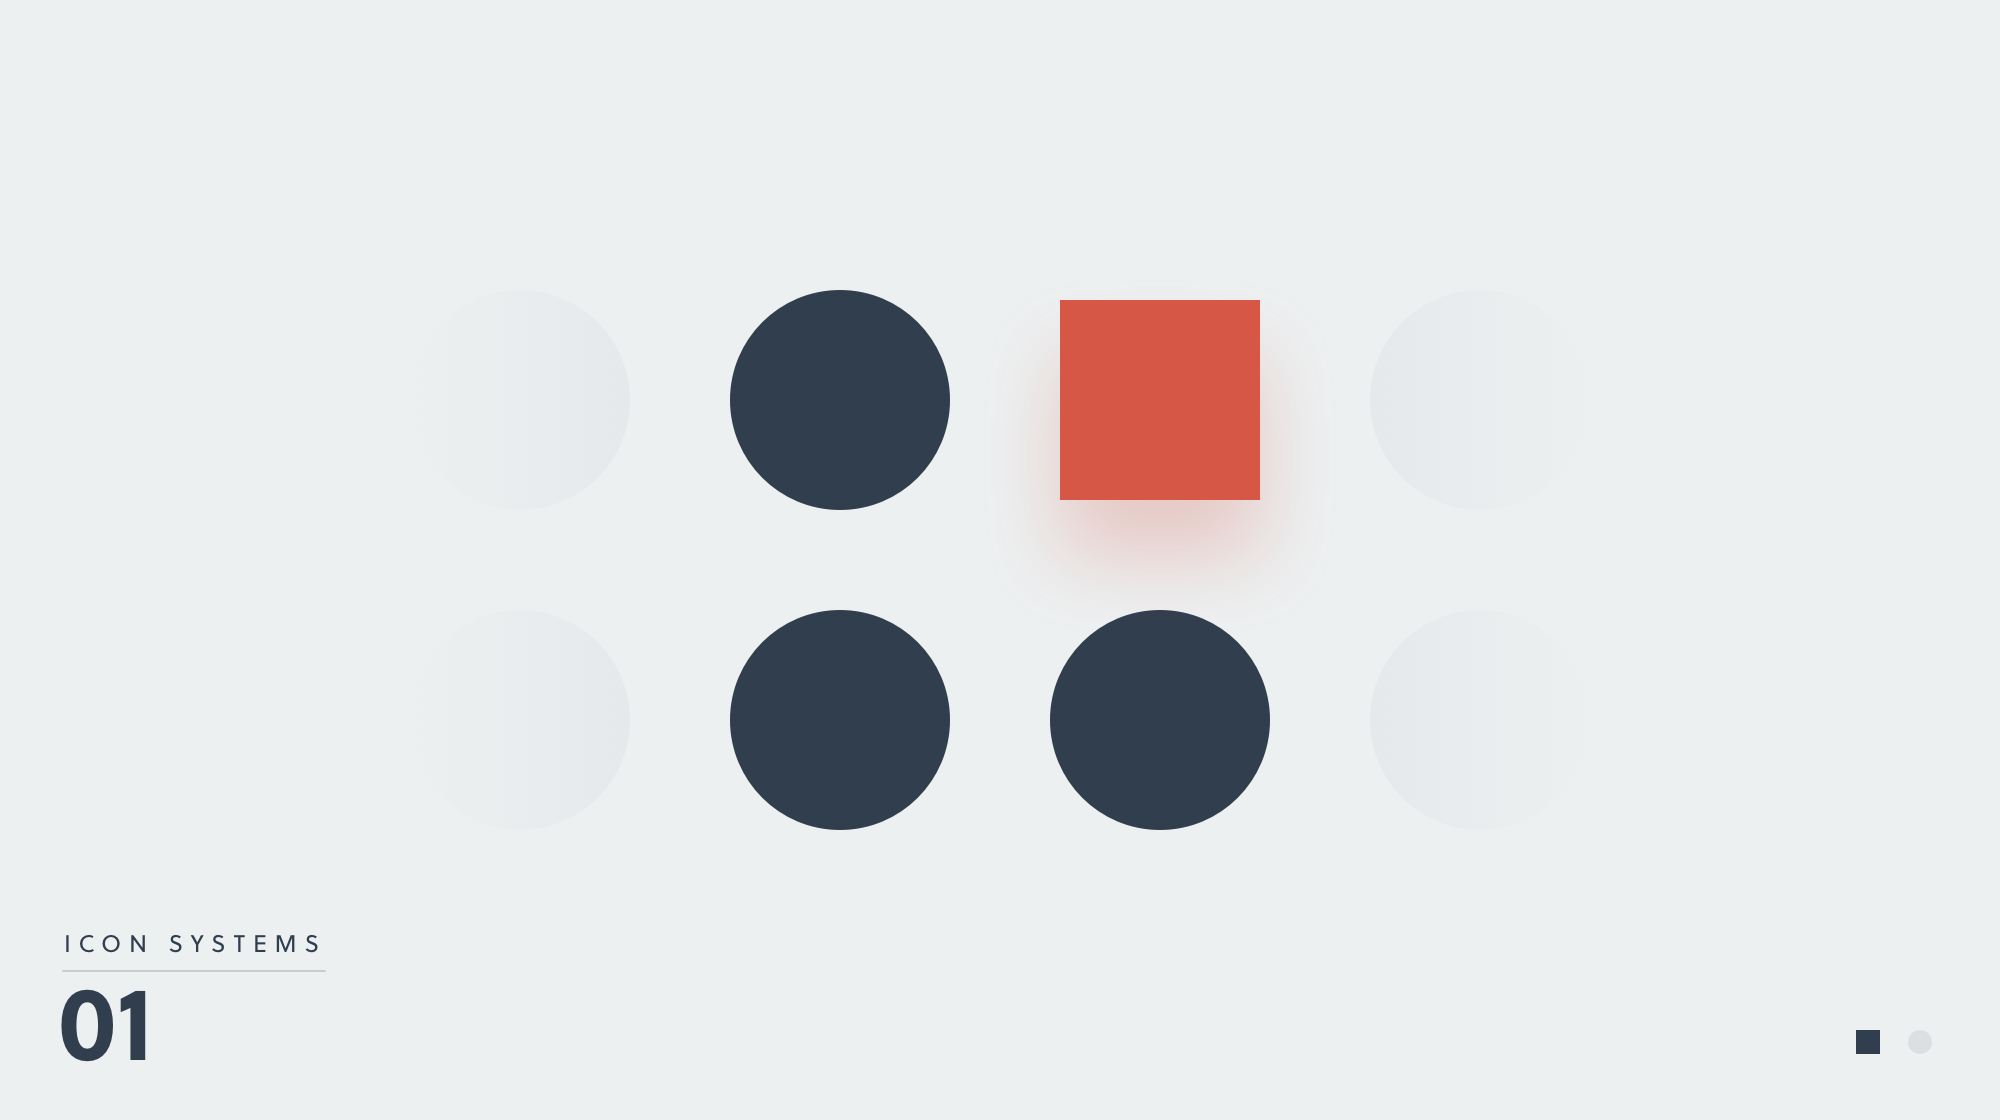 The guide to integrating and styling icon systems — inline SVG and